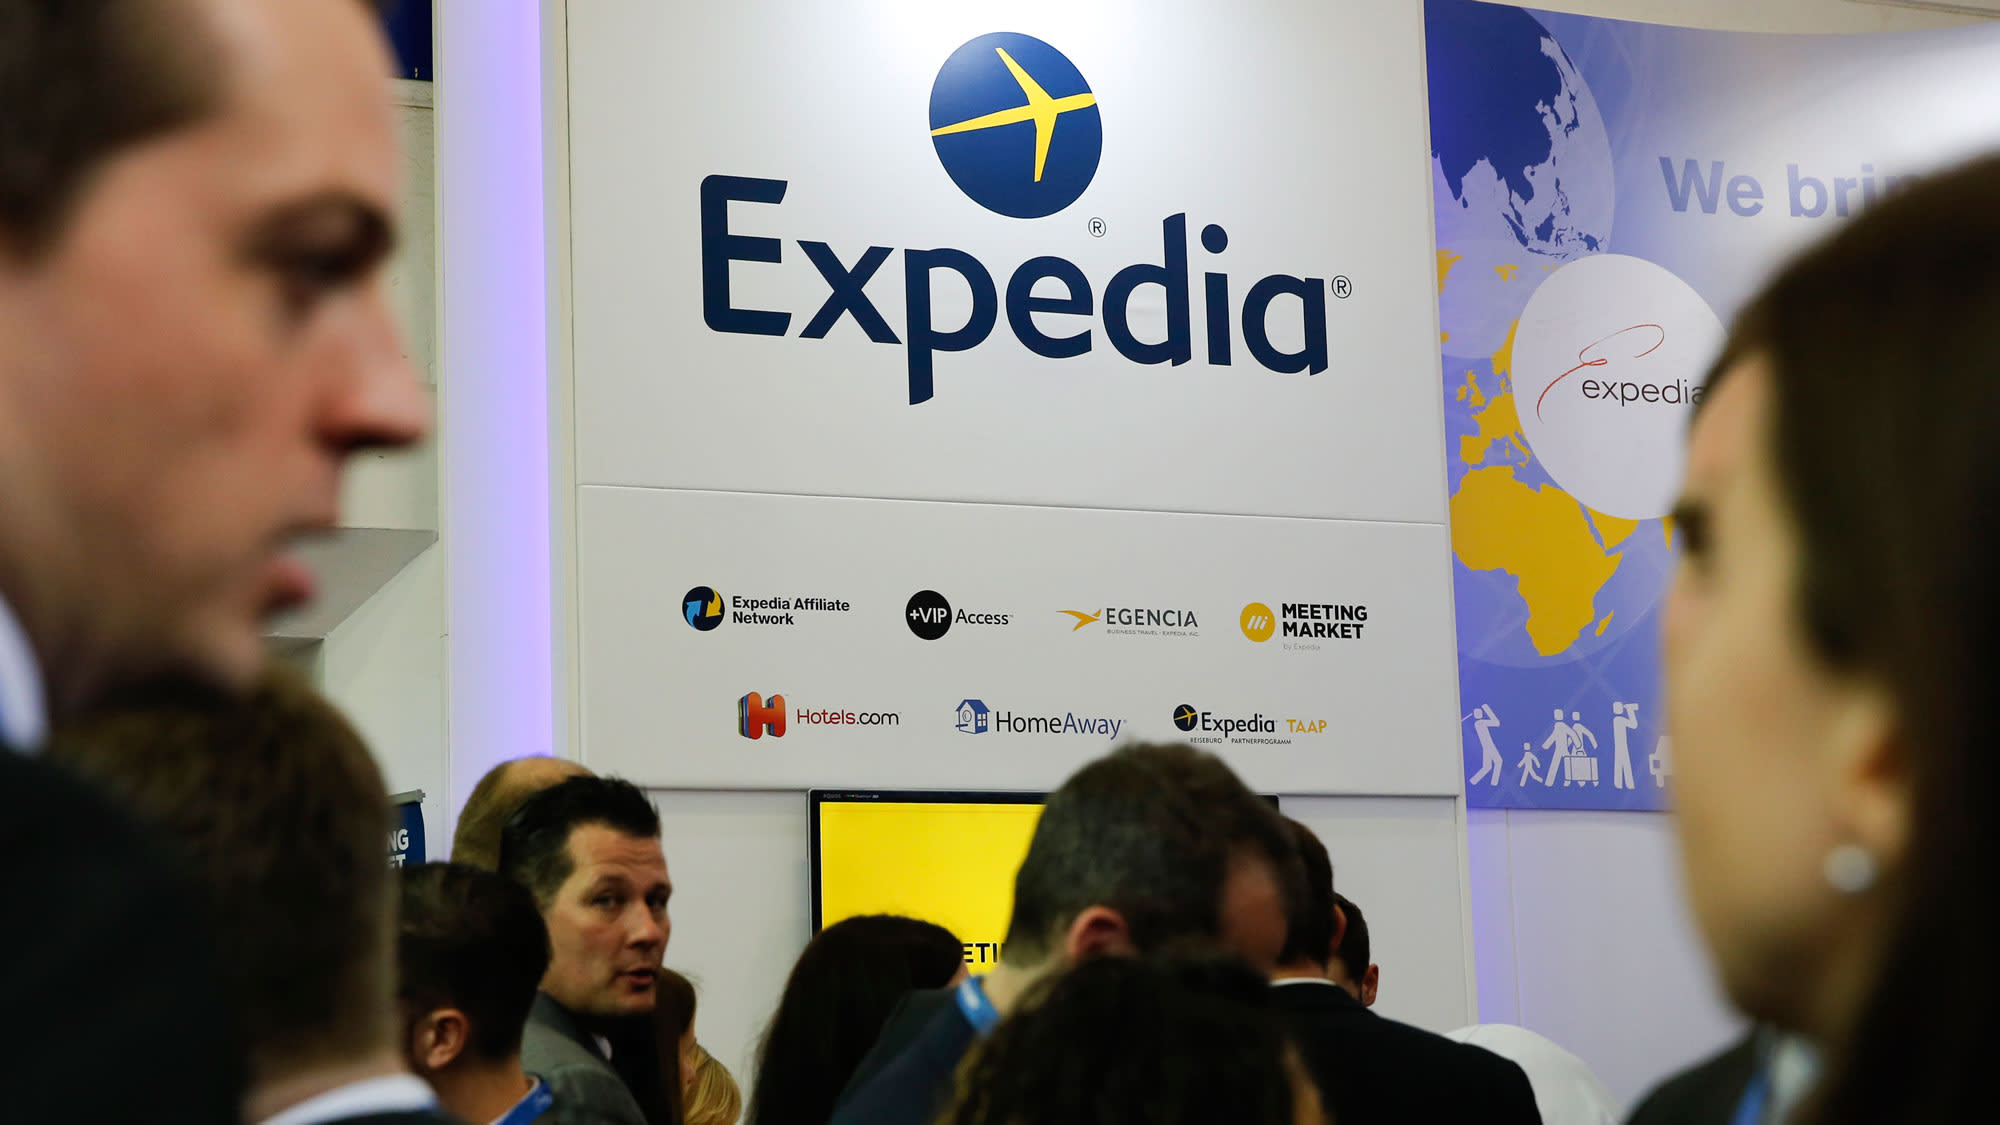 Analyst Downgrades Expedia Says Growth Trajectory Remains Uncertain